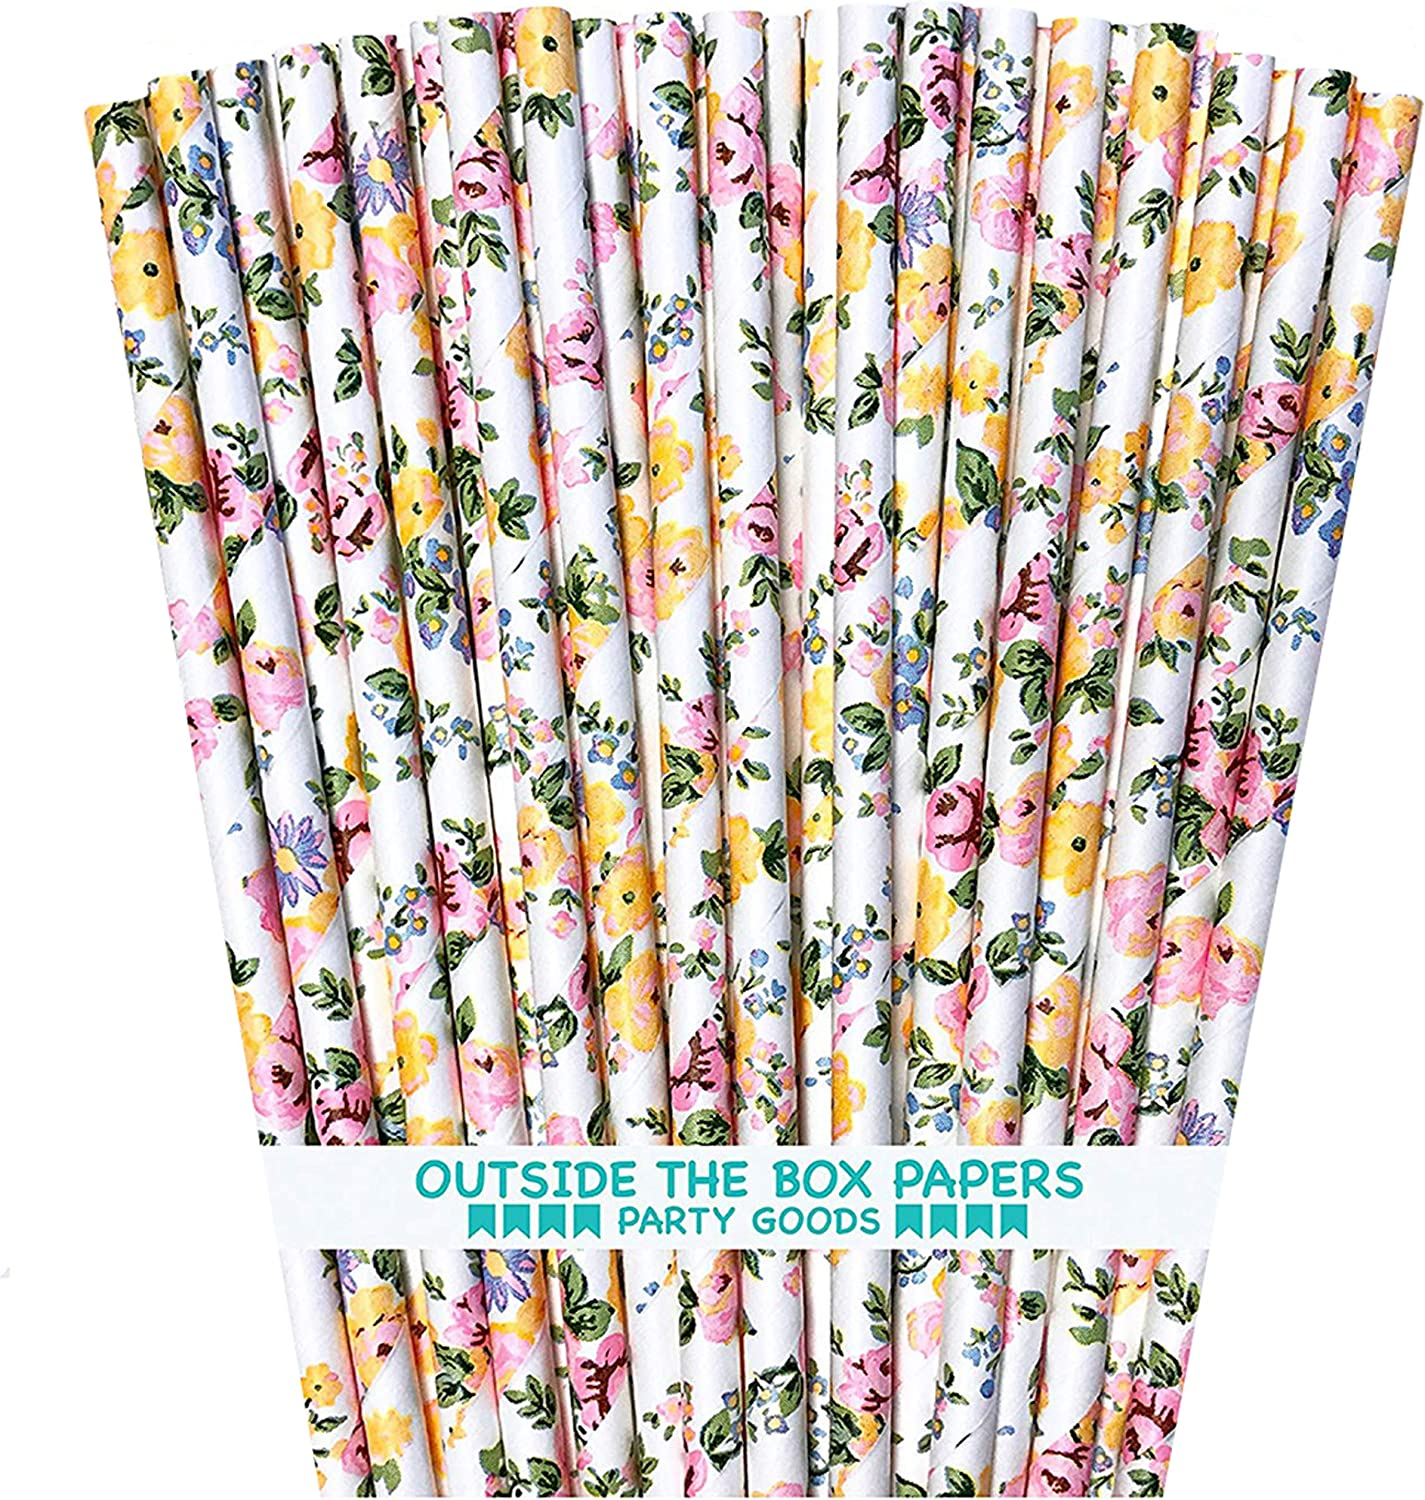 Rose Floral Paper Straws - Pink Yellow White - 7.75 Inches - 100 Pack - Outside the Box Papers Brand